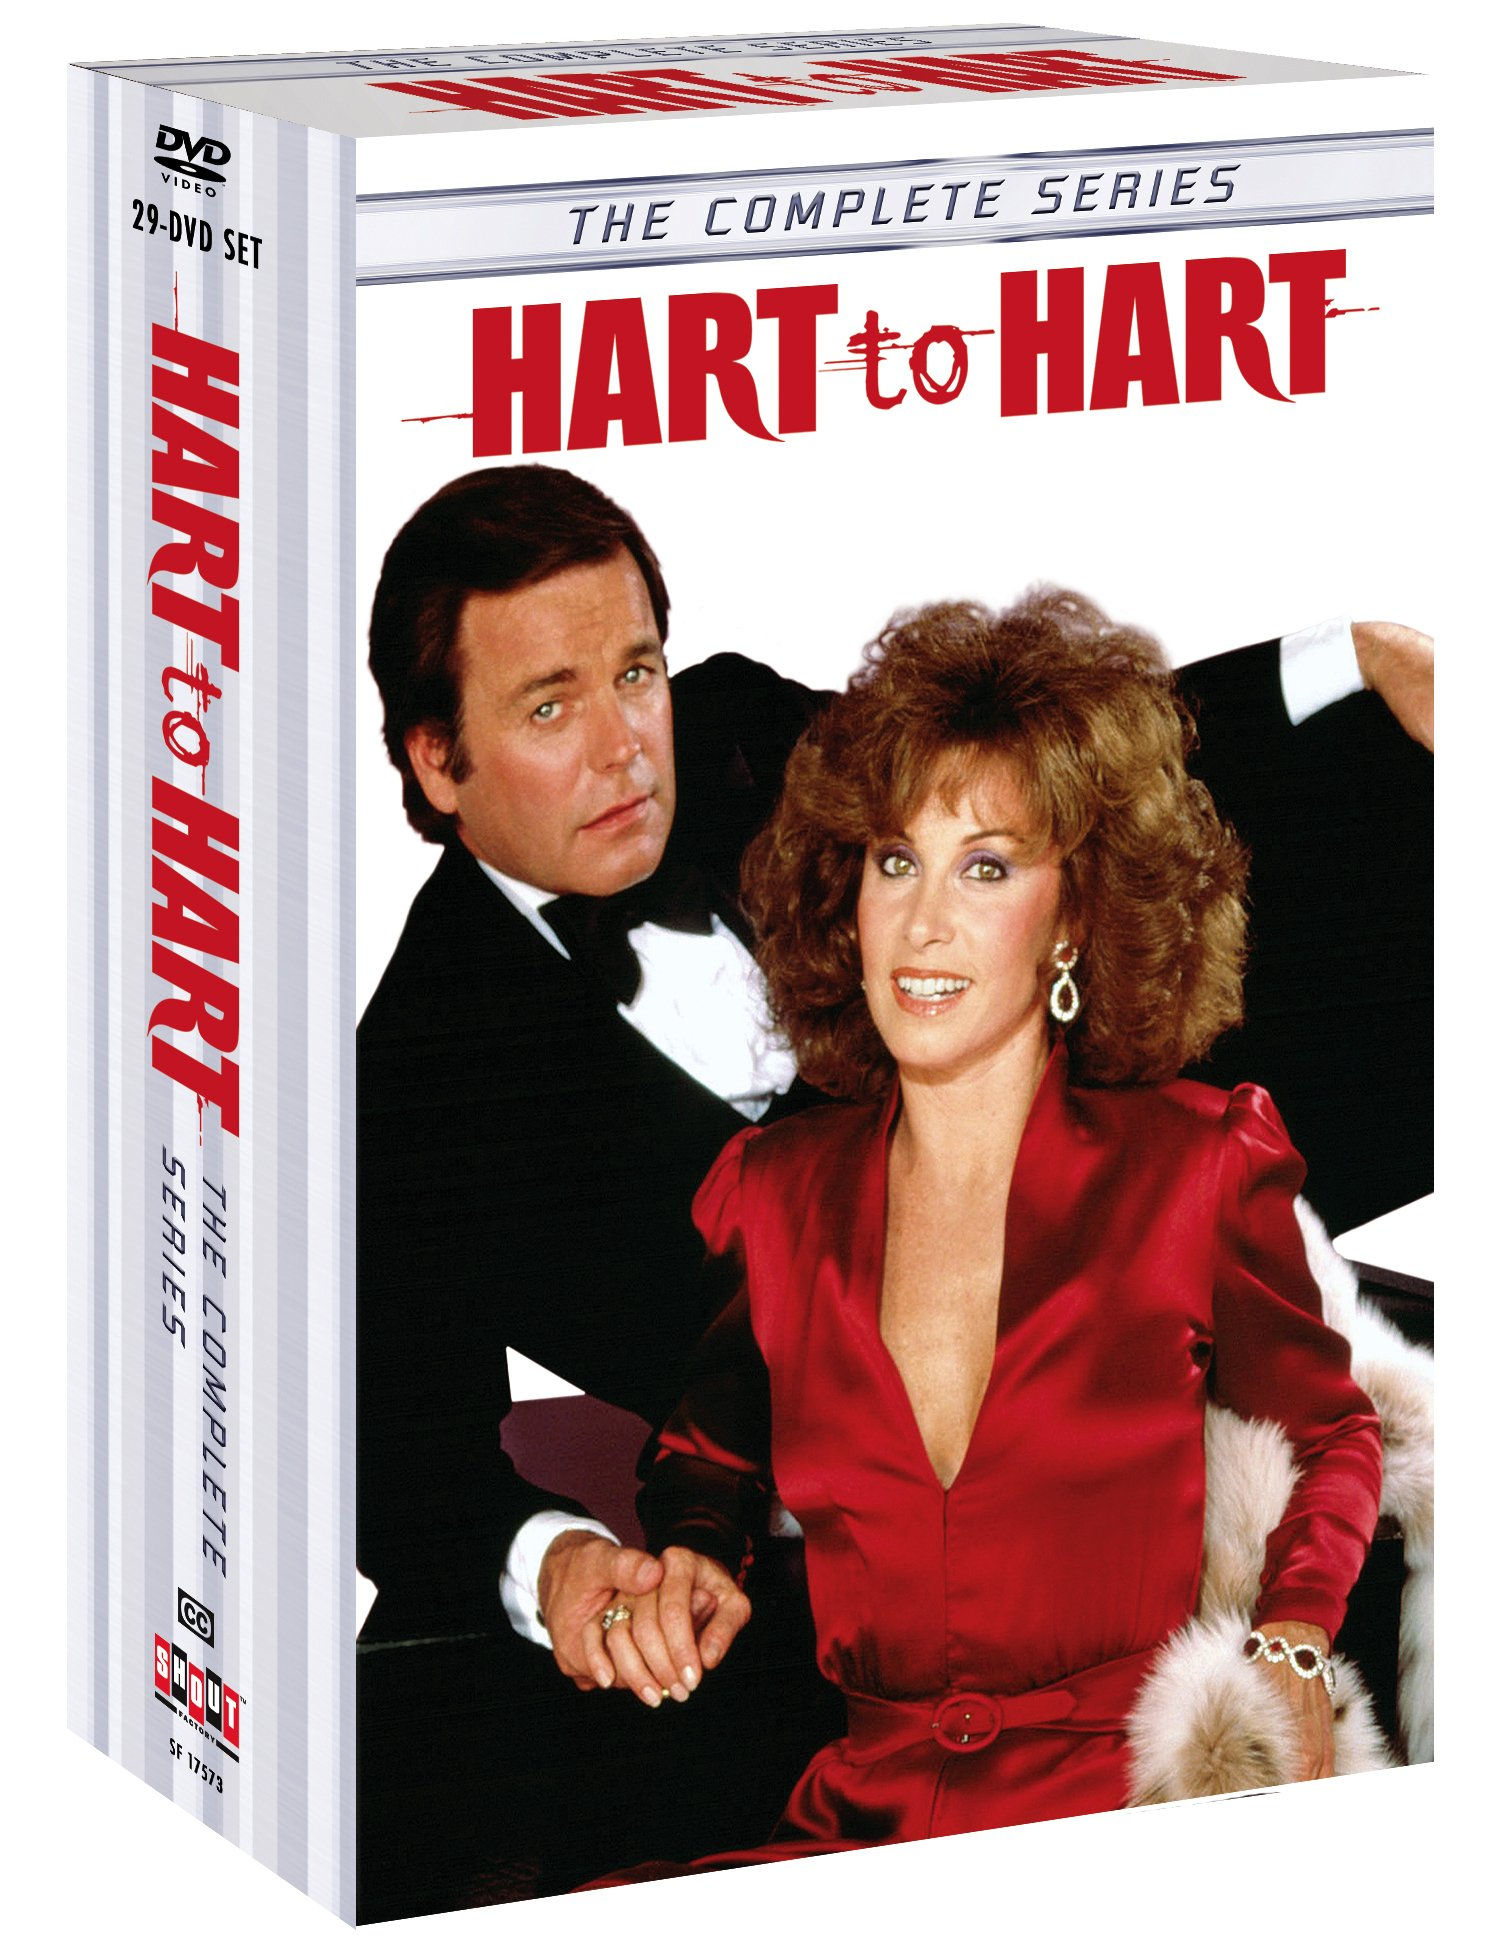 Hart To Hart: The Complete Series by SHOUT! FACTORY, LLC